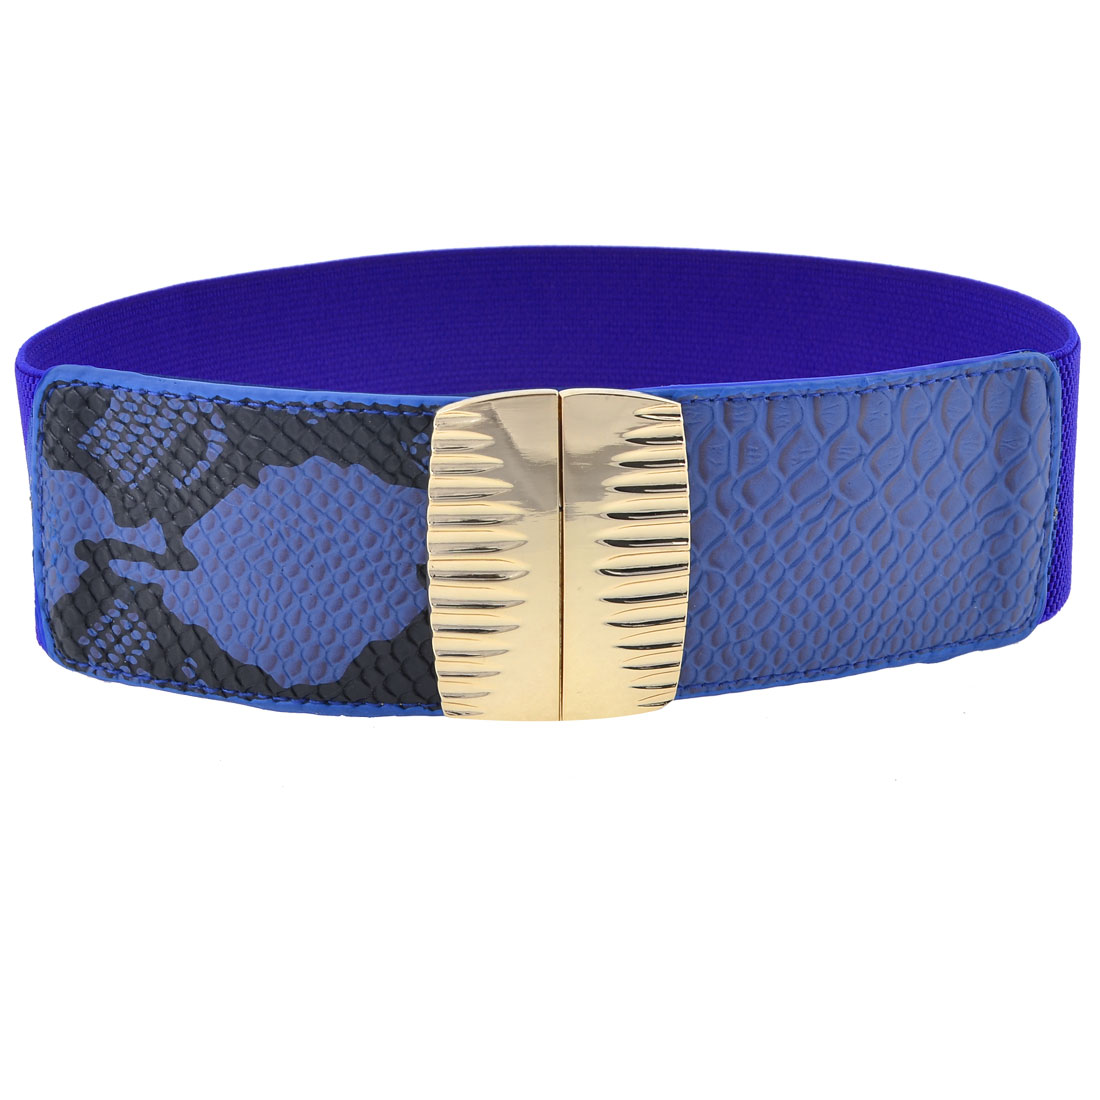 Ladies Blue Snake Print Faux Leather Interlock Buckle Stretch Waistbelt Band